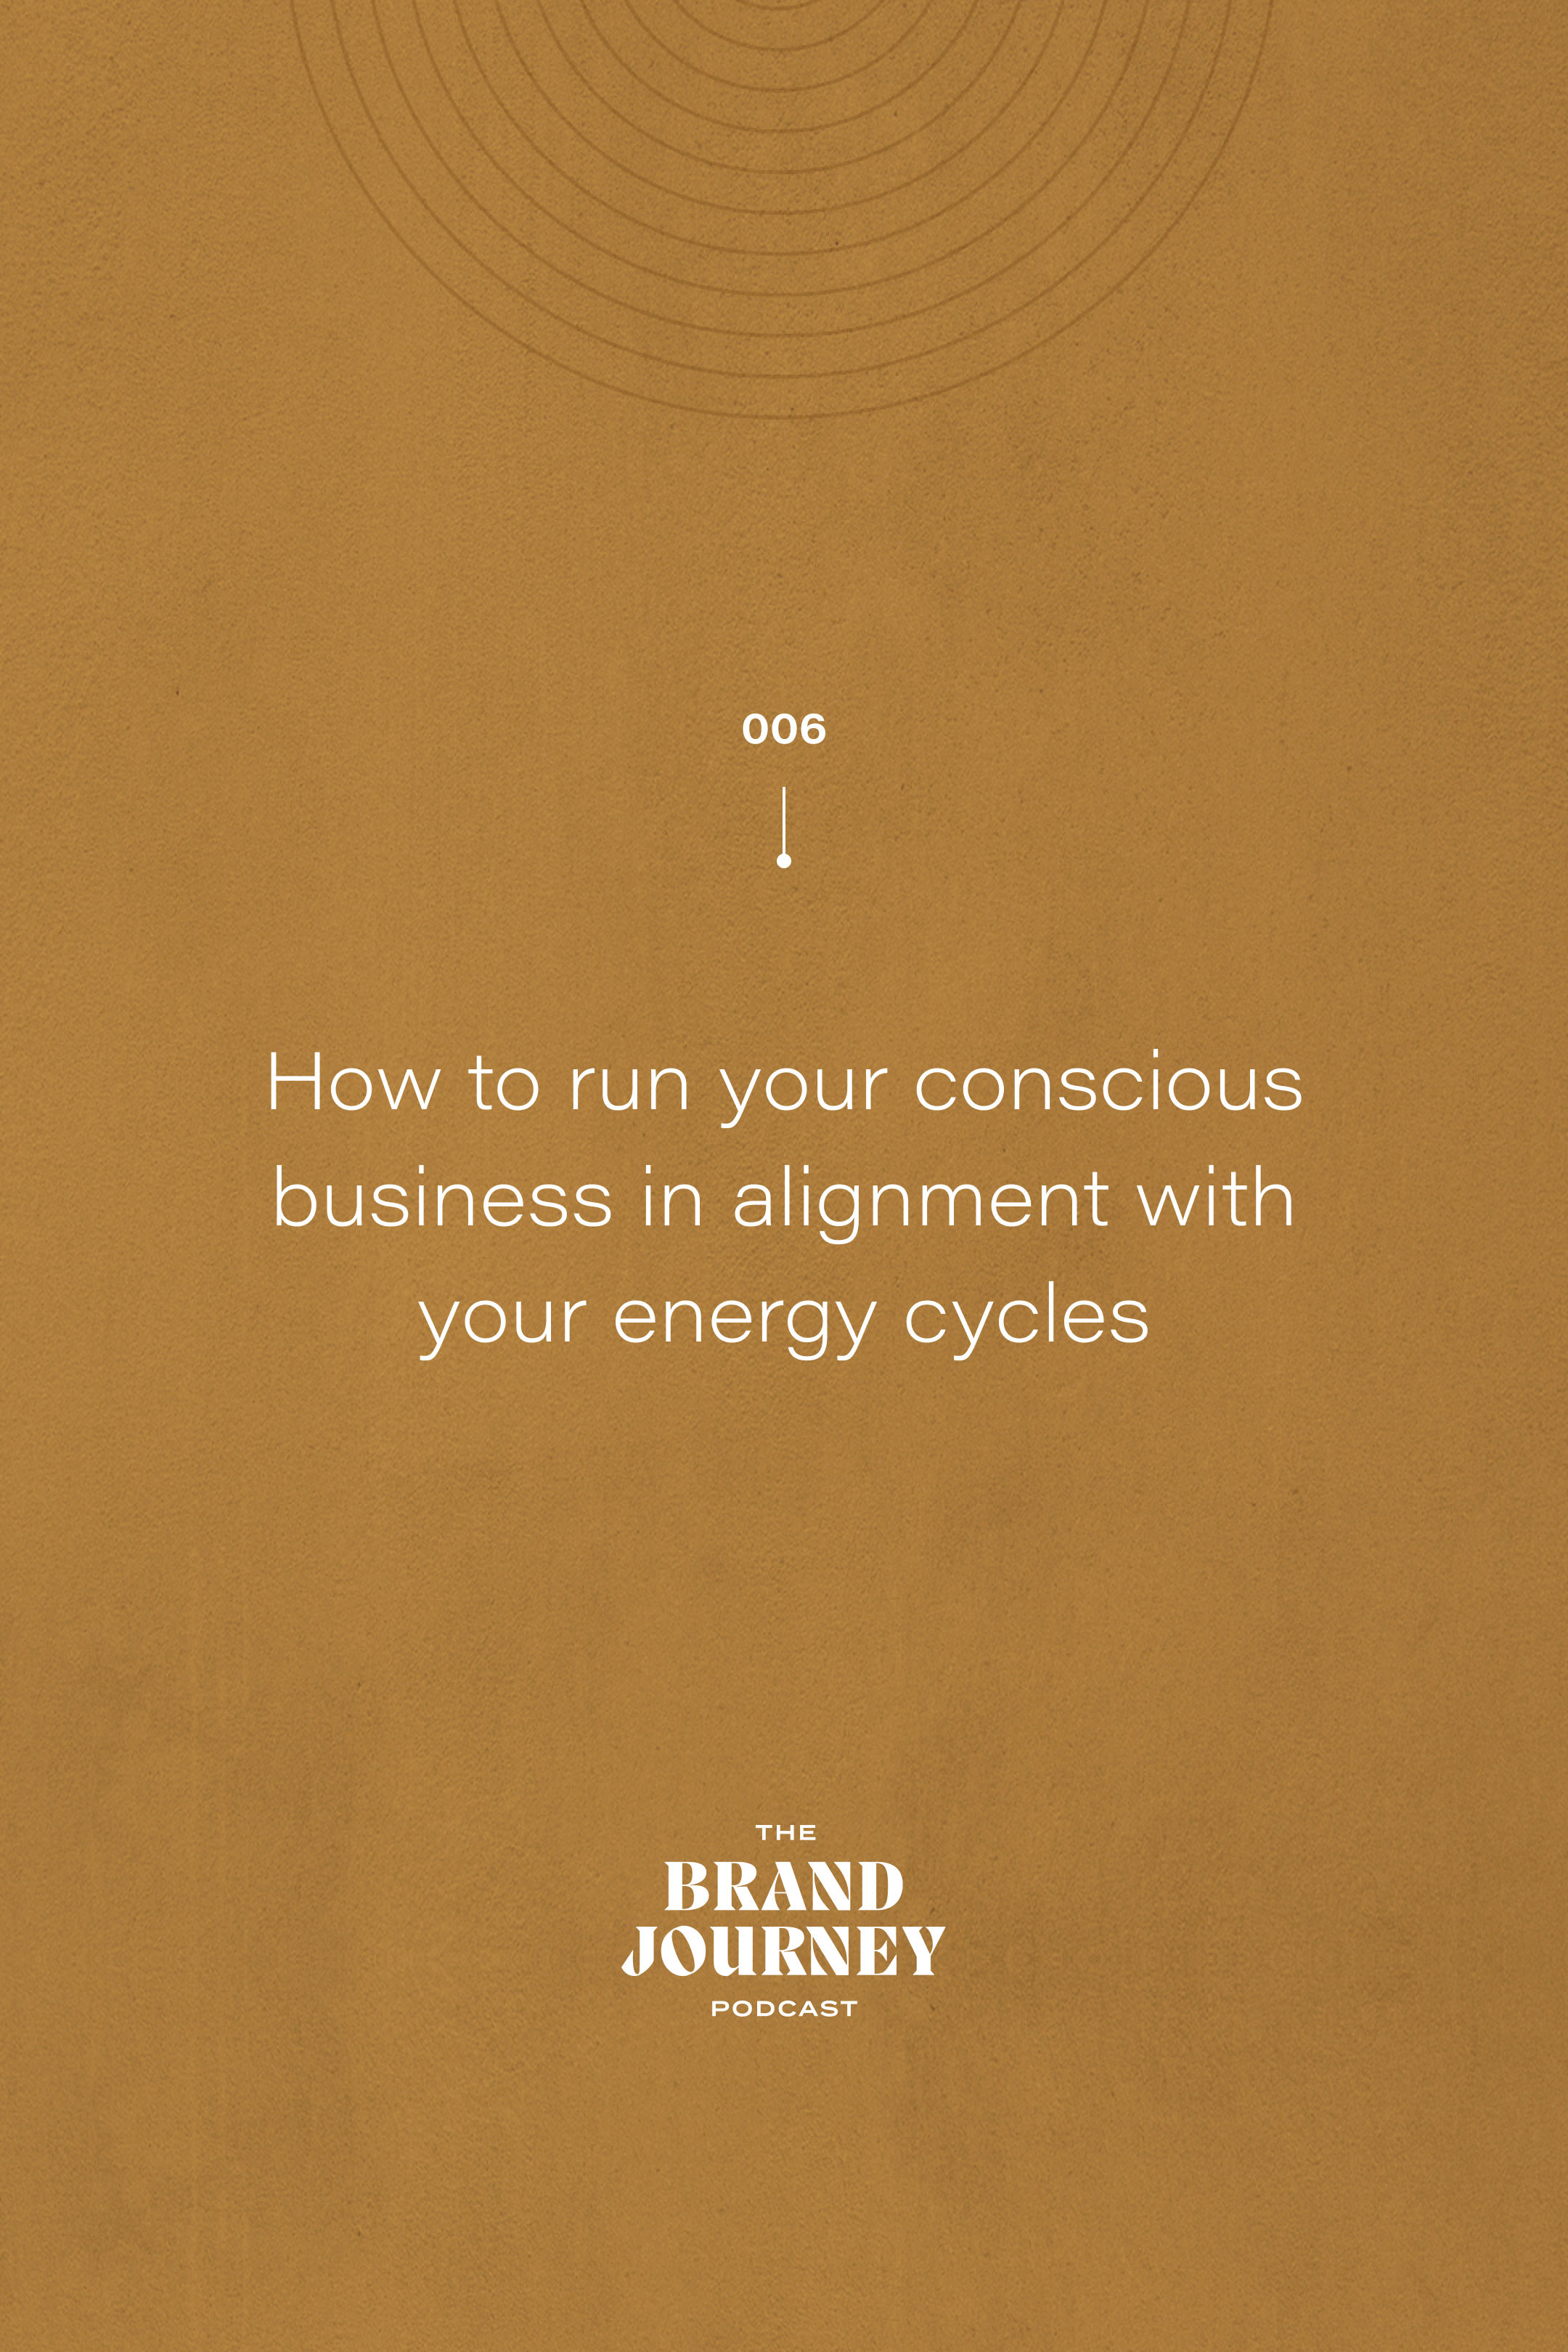 How to run your conscious business in alignment with your energy cycles